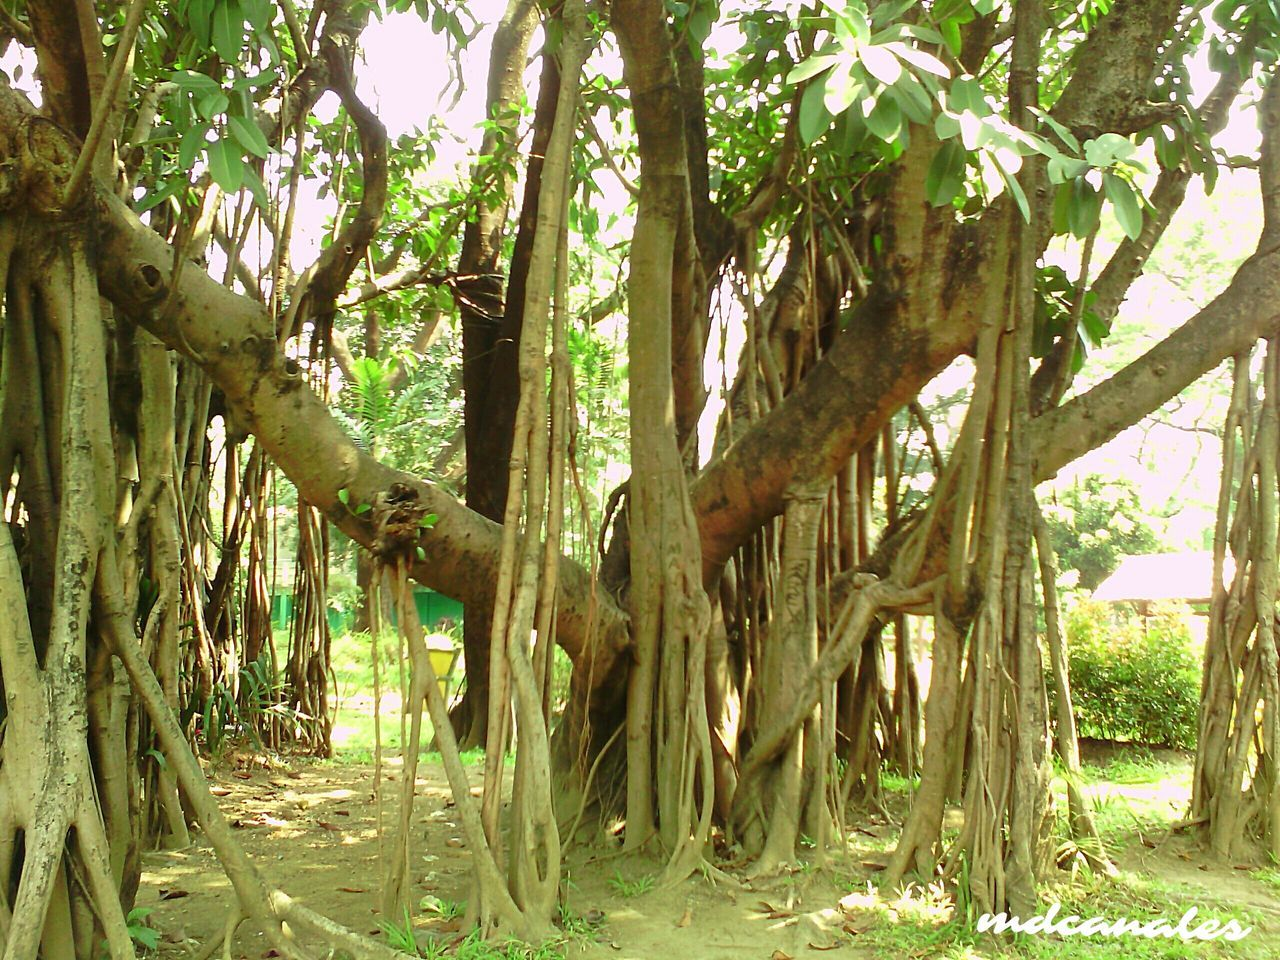 Growth Outdoors Nature Tree Tree Trunk No People Beauty In Nature Branch Day Philippines Photos Outdoor Pictures Outdoors, Outside, Open-air, Air, Fresh, Fresh Air, Outdoor Photography Trees And Nature Philippines Beauty In Nature Growth Tree Trunk Outdoor Beauty